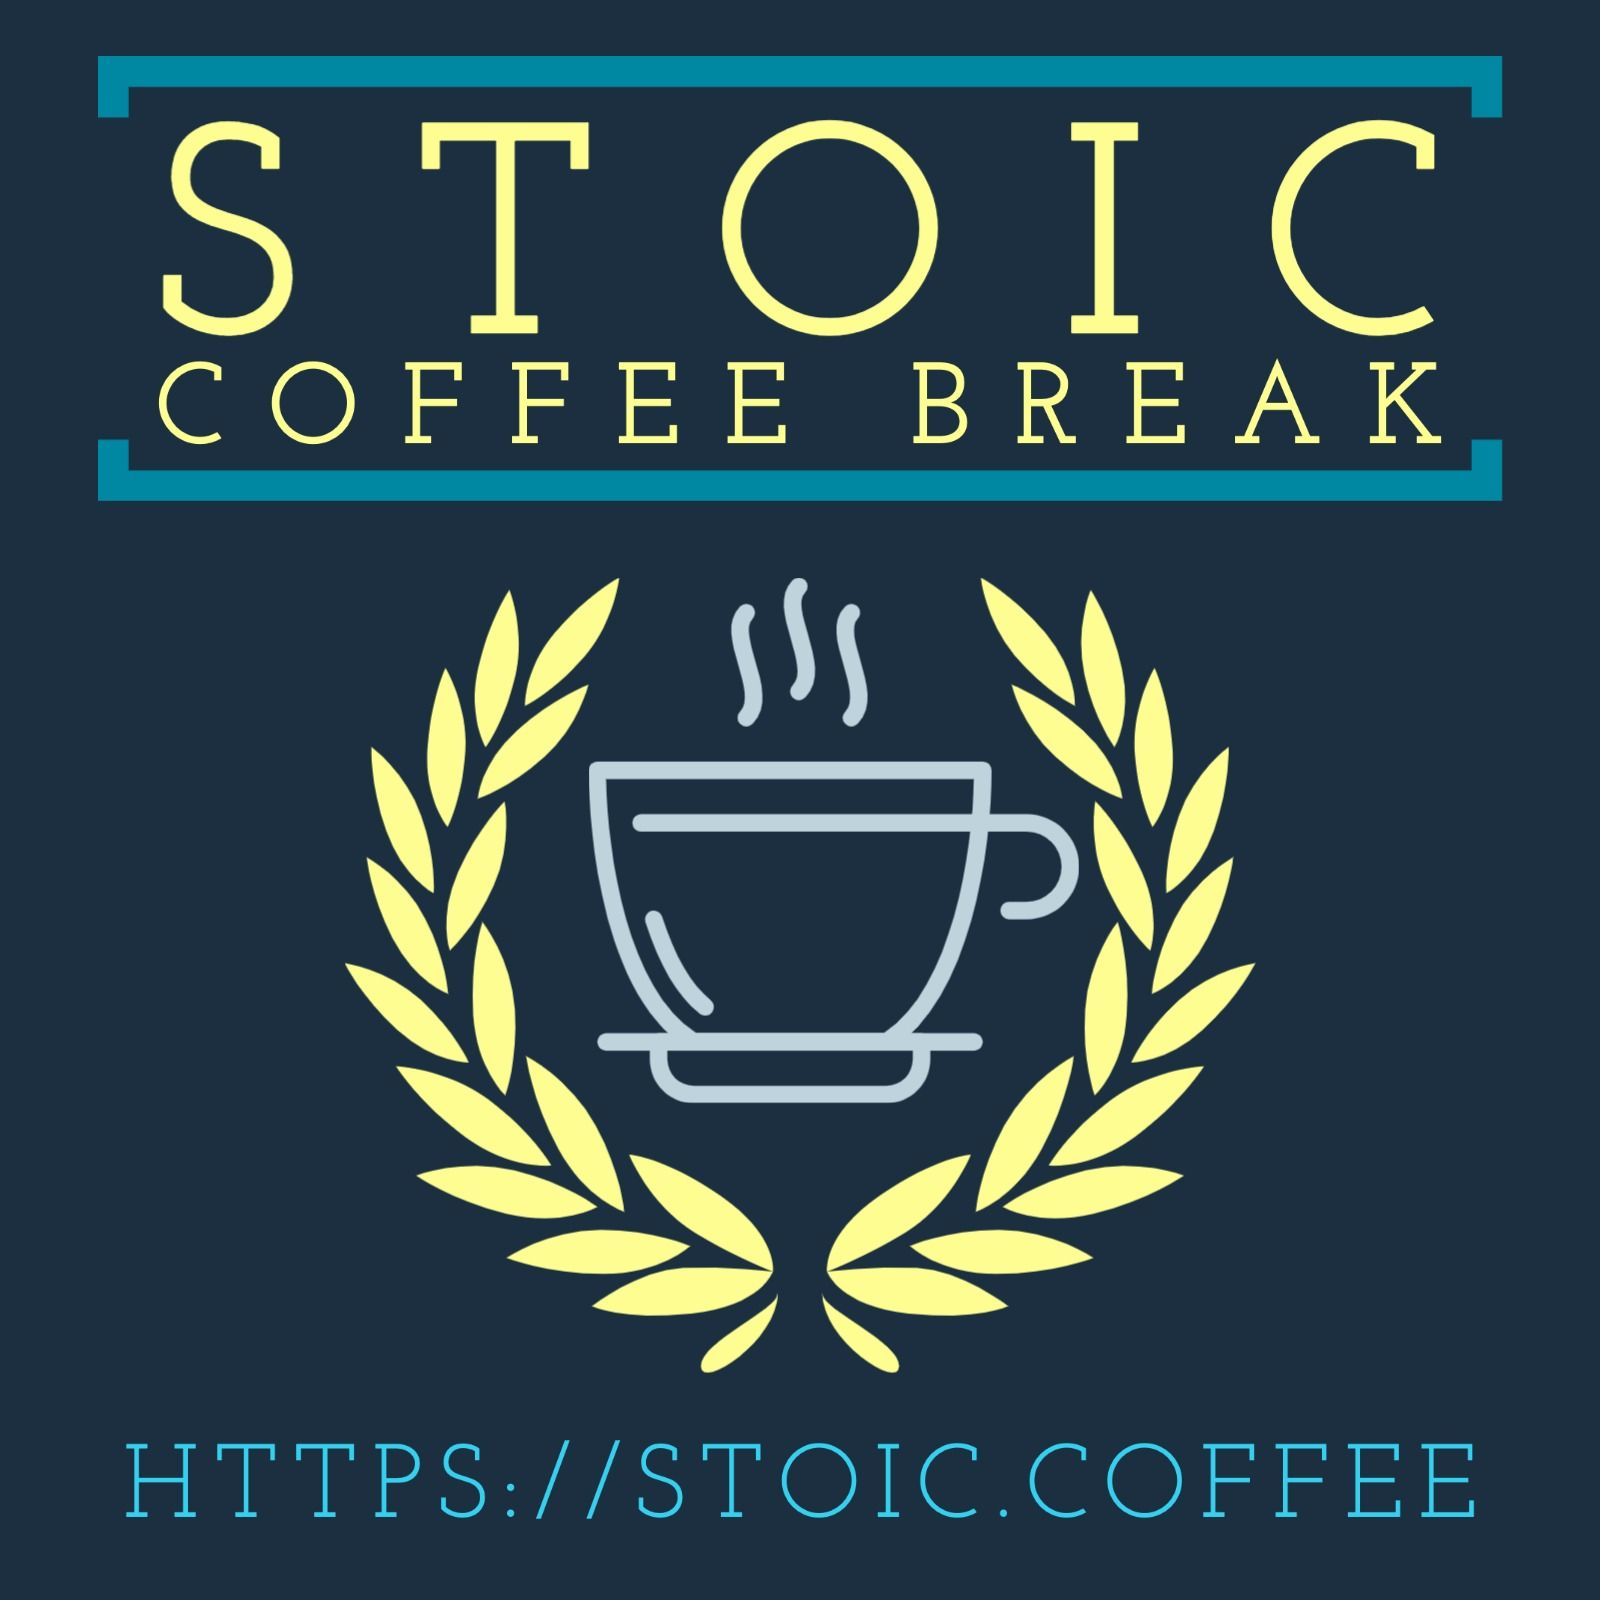 Stoic Coffee Break